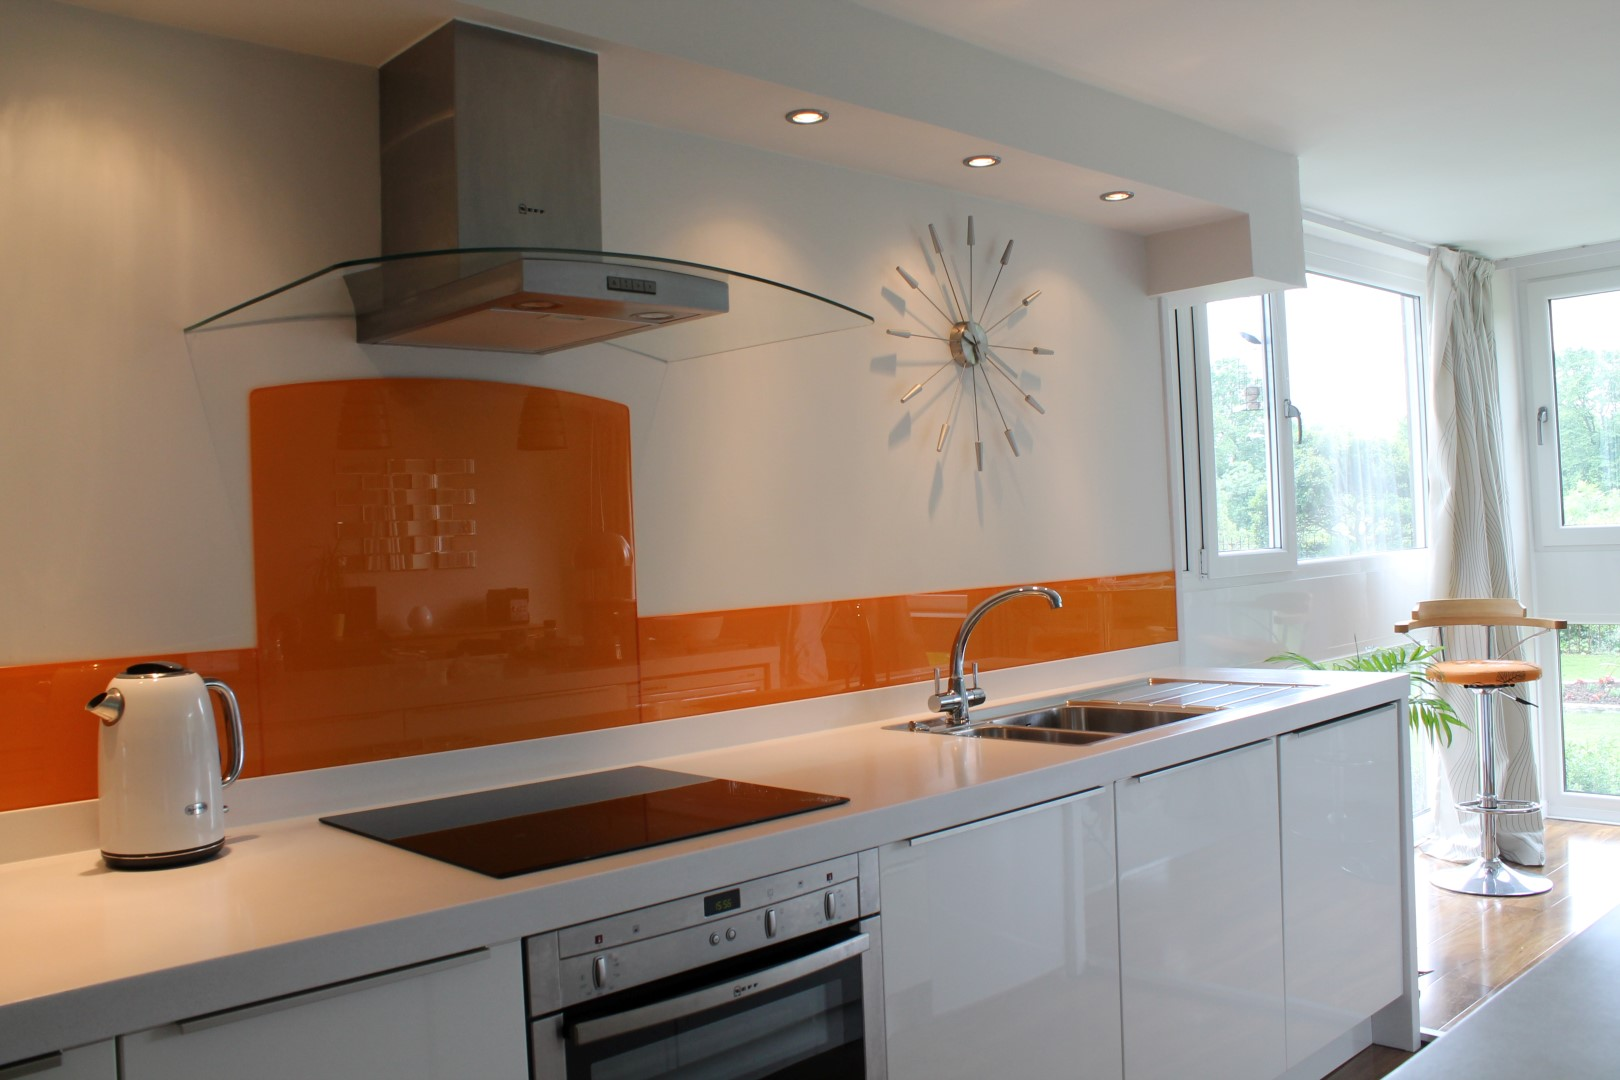 Splashback For Kitchens Bespoke Glass Splashbacks Instantly Brighten Up Your Kitchen